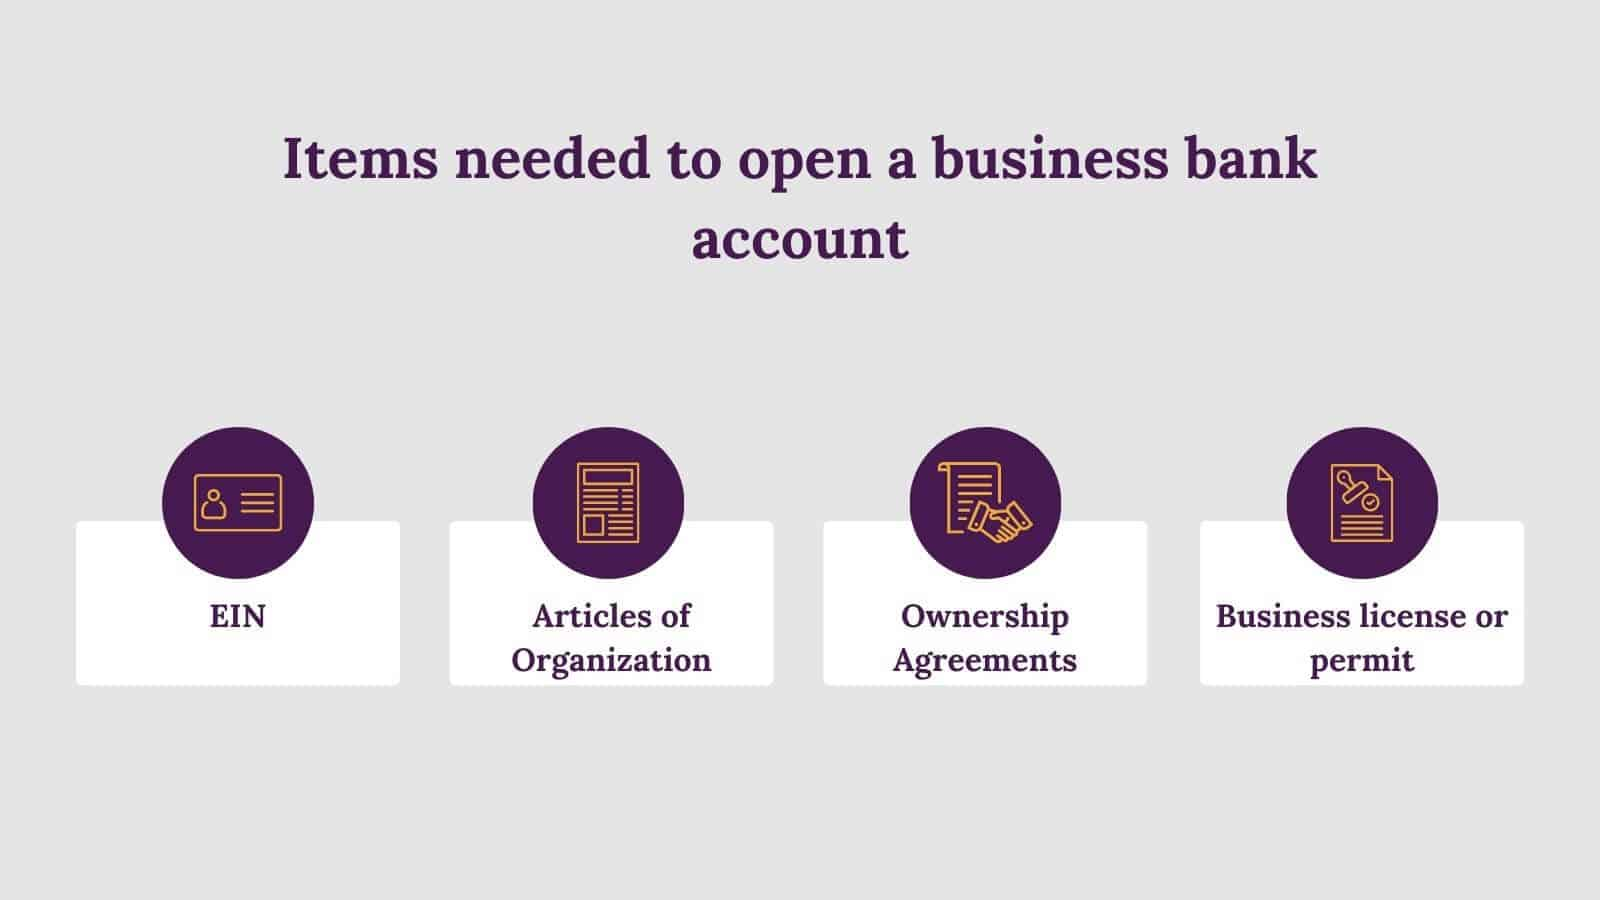 Items needed to open a business bank account.